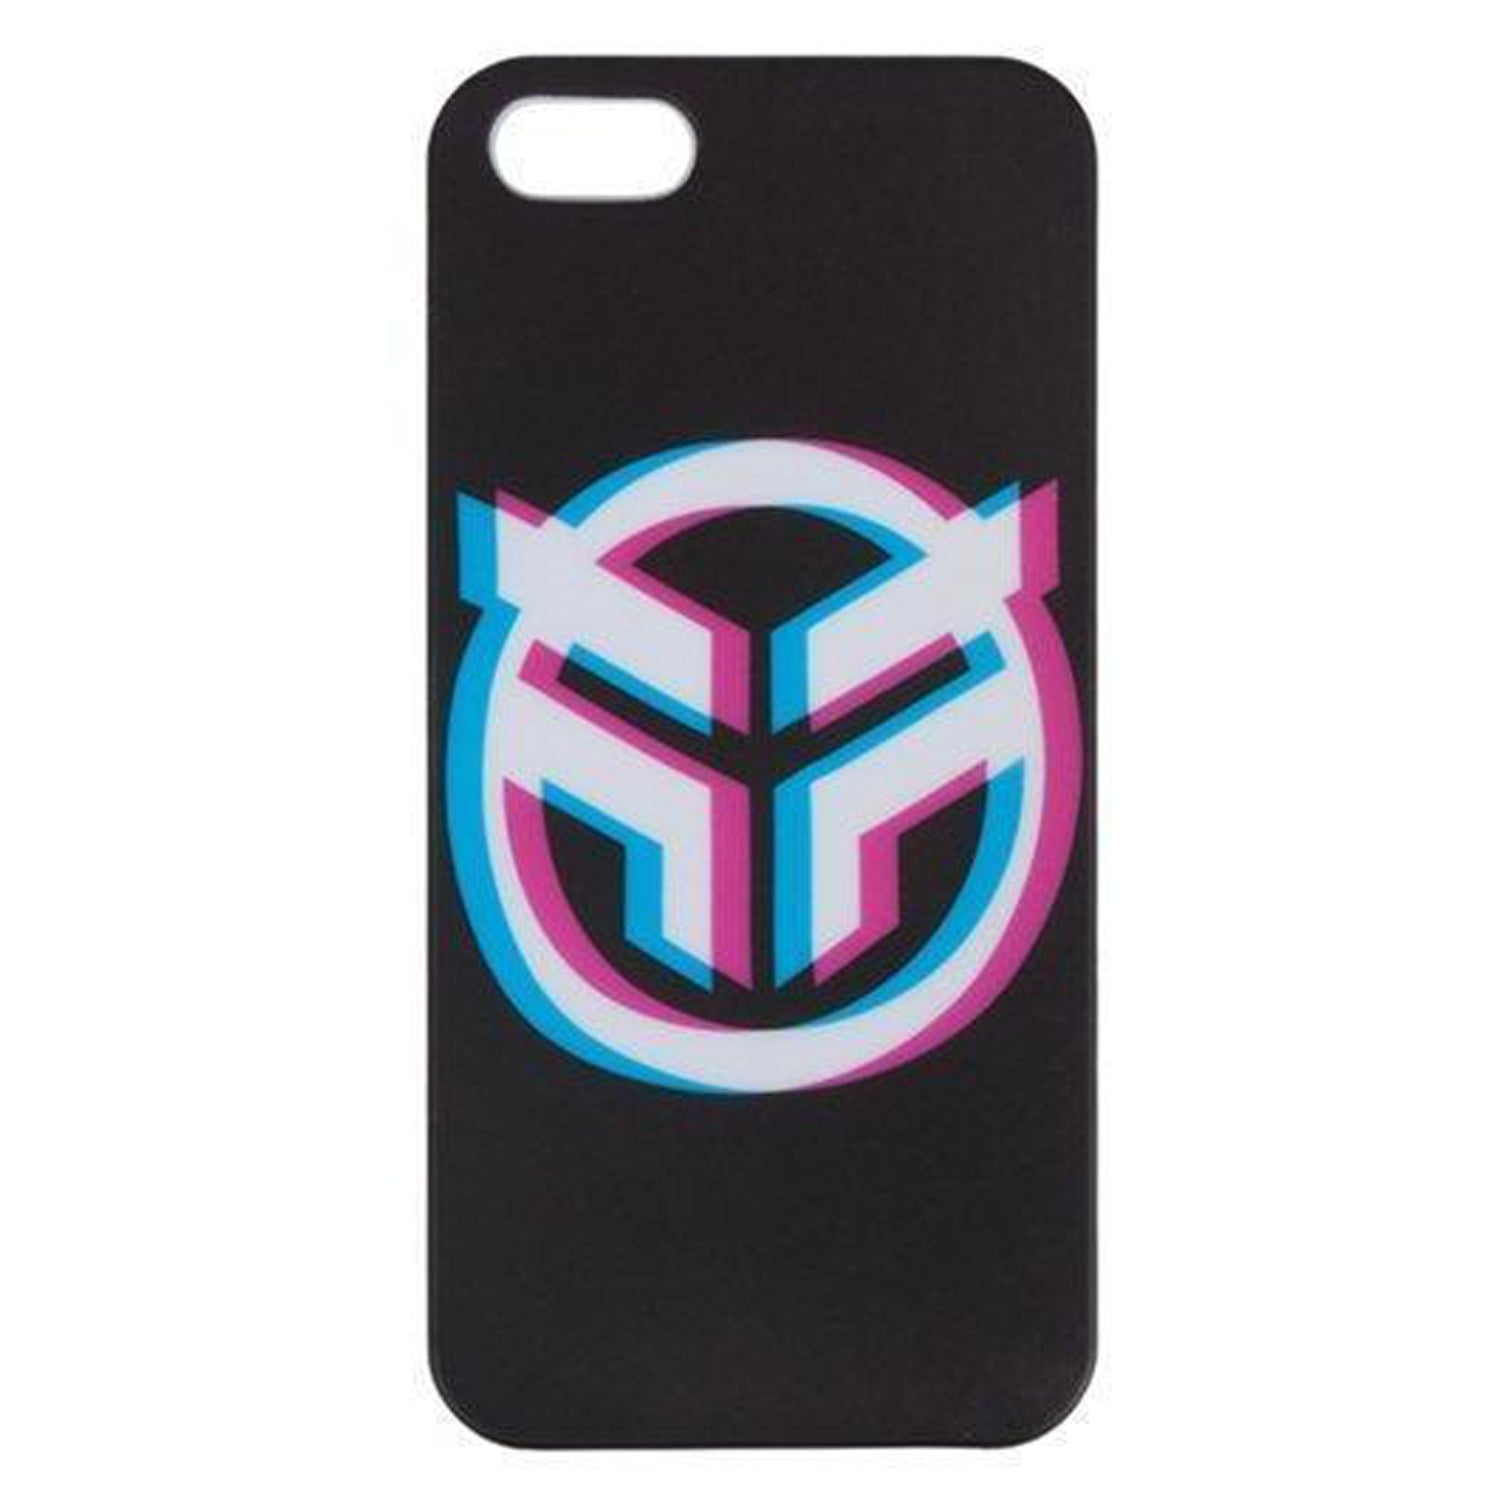 Federal 3D Iphone 4G/4Gs Case Black